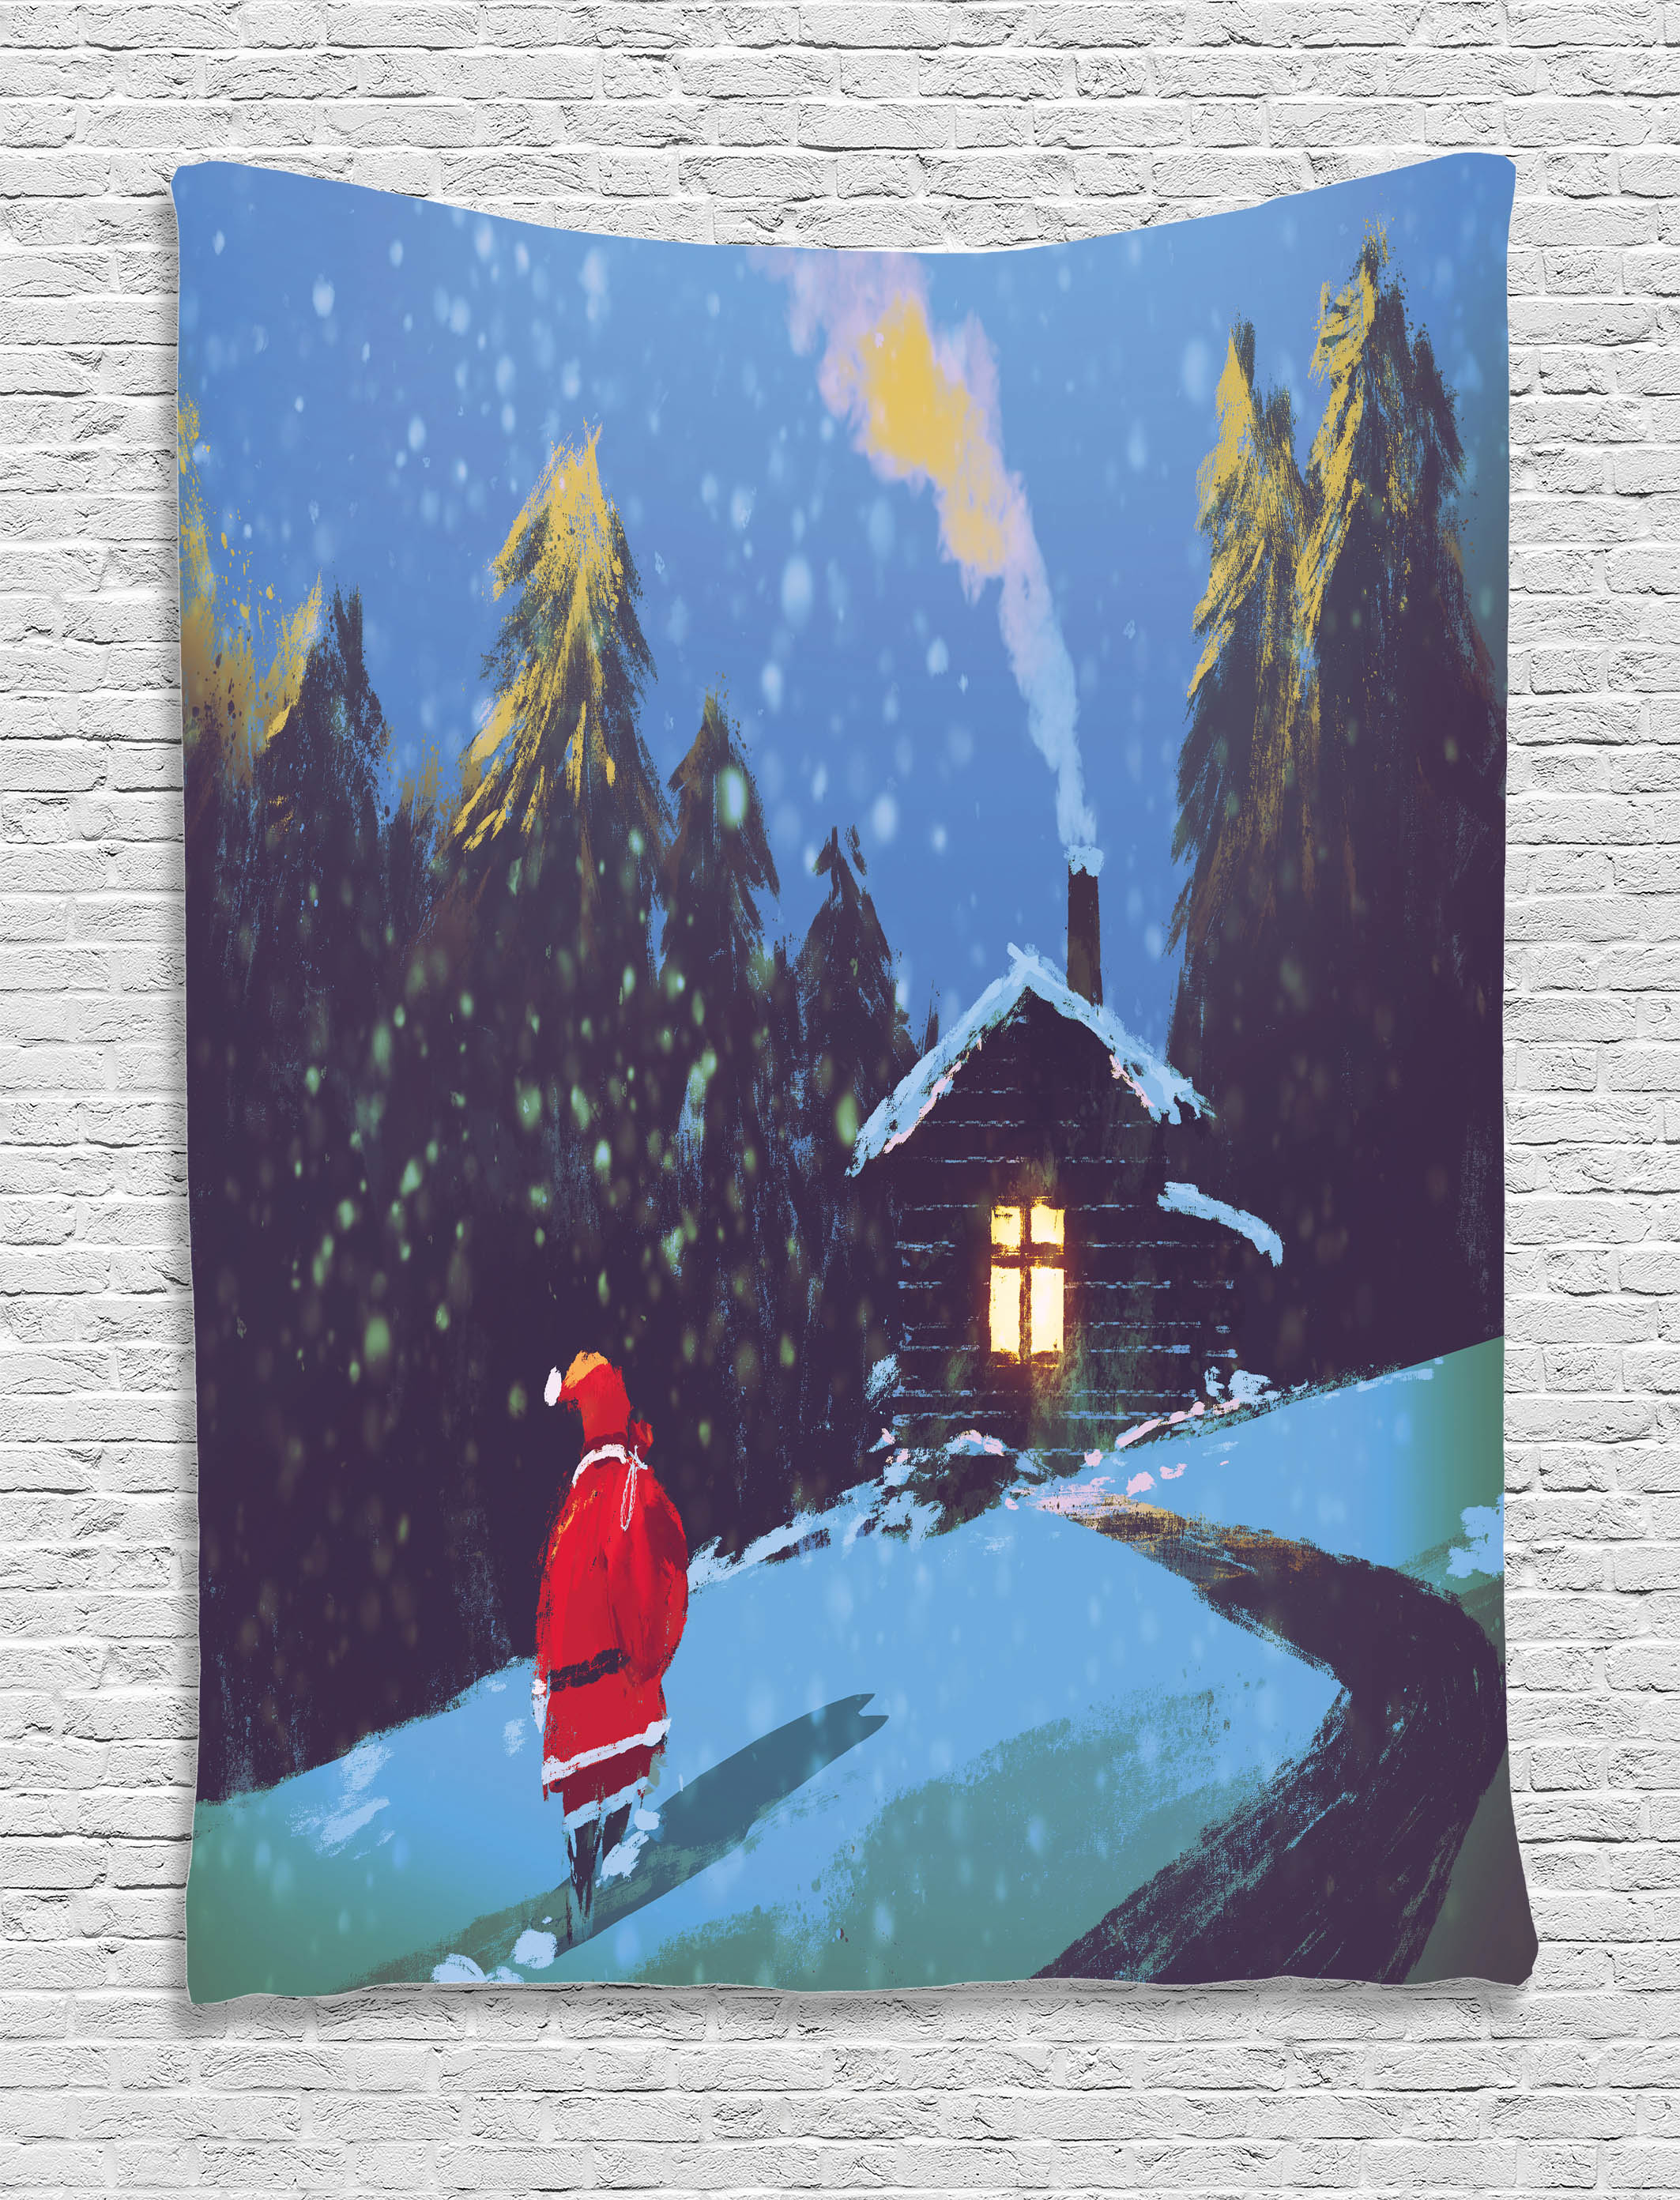 Fantasy Art House Decor Tapestry, Christmas Santa Claus Walking to the Mountain House Surrounded by Pines, Wall Hanging for Bedroom Living... by Kozmos